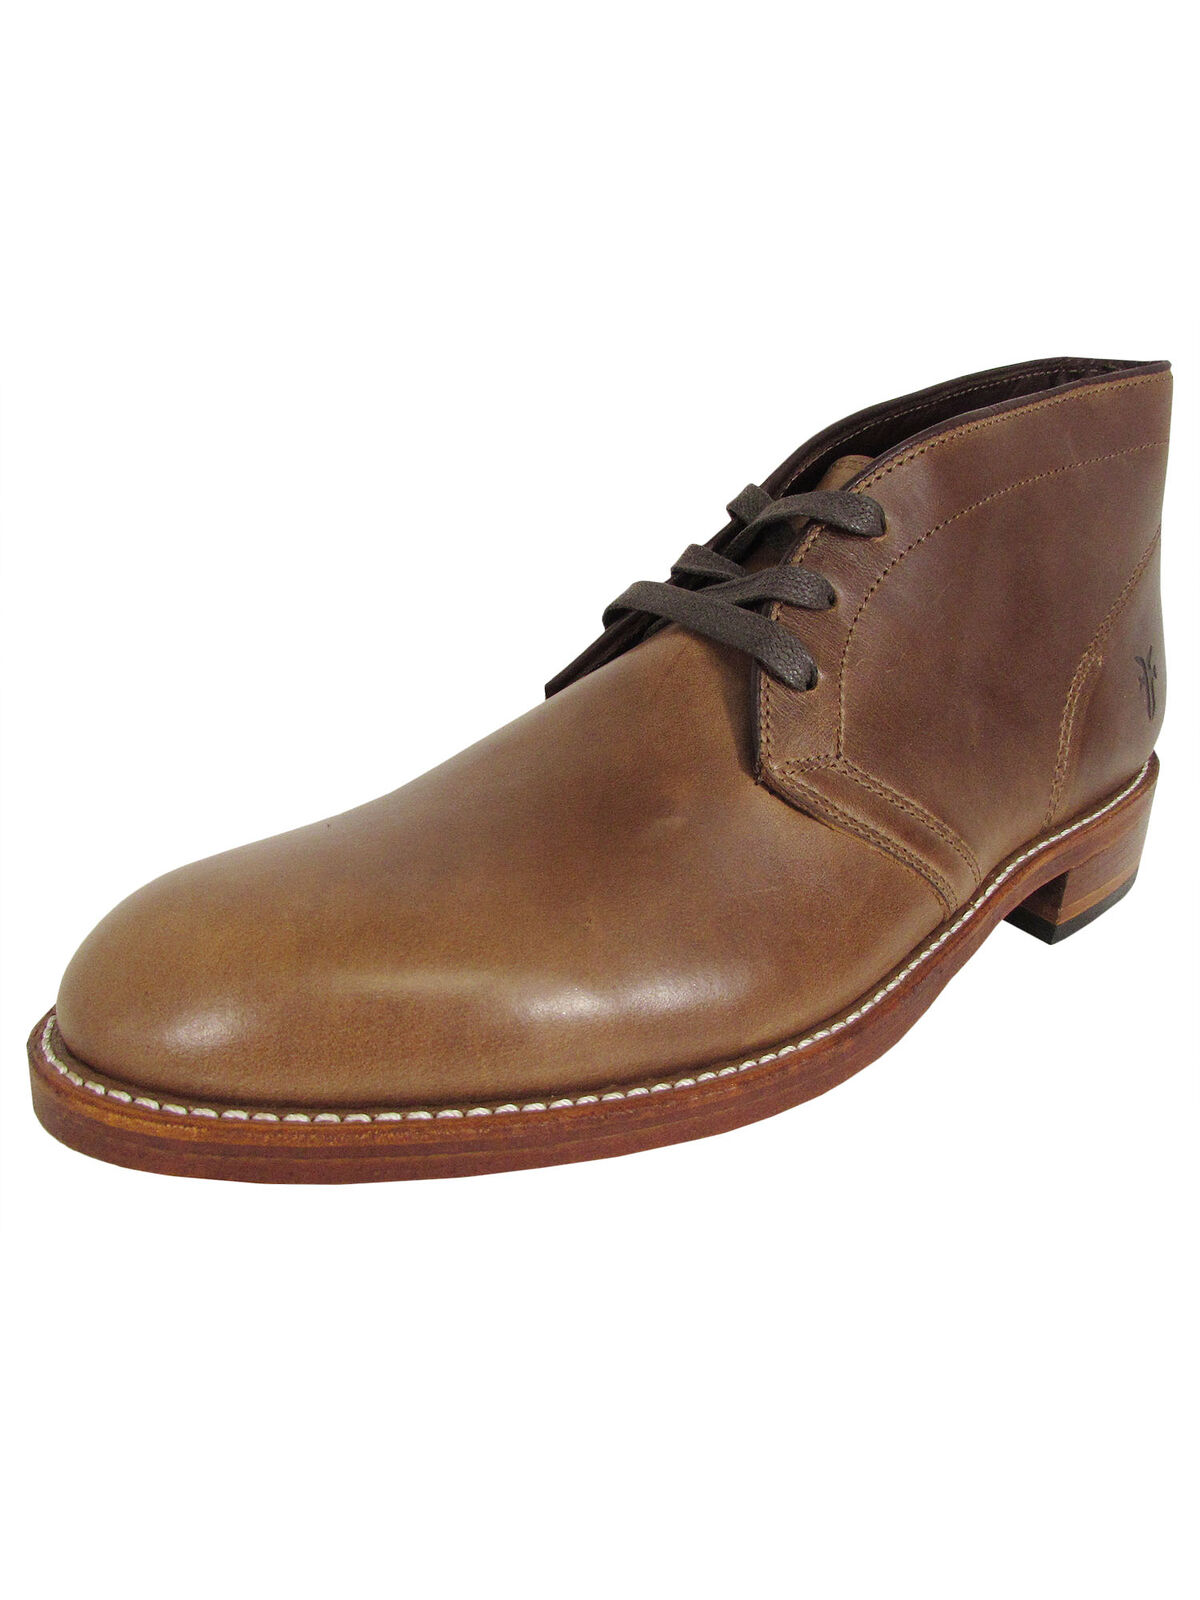 Frye Mens Walter Chukka Lace Up Ankle Boots, Tan, US 9.5